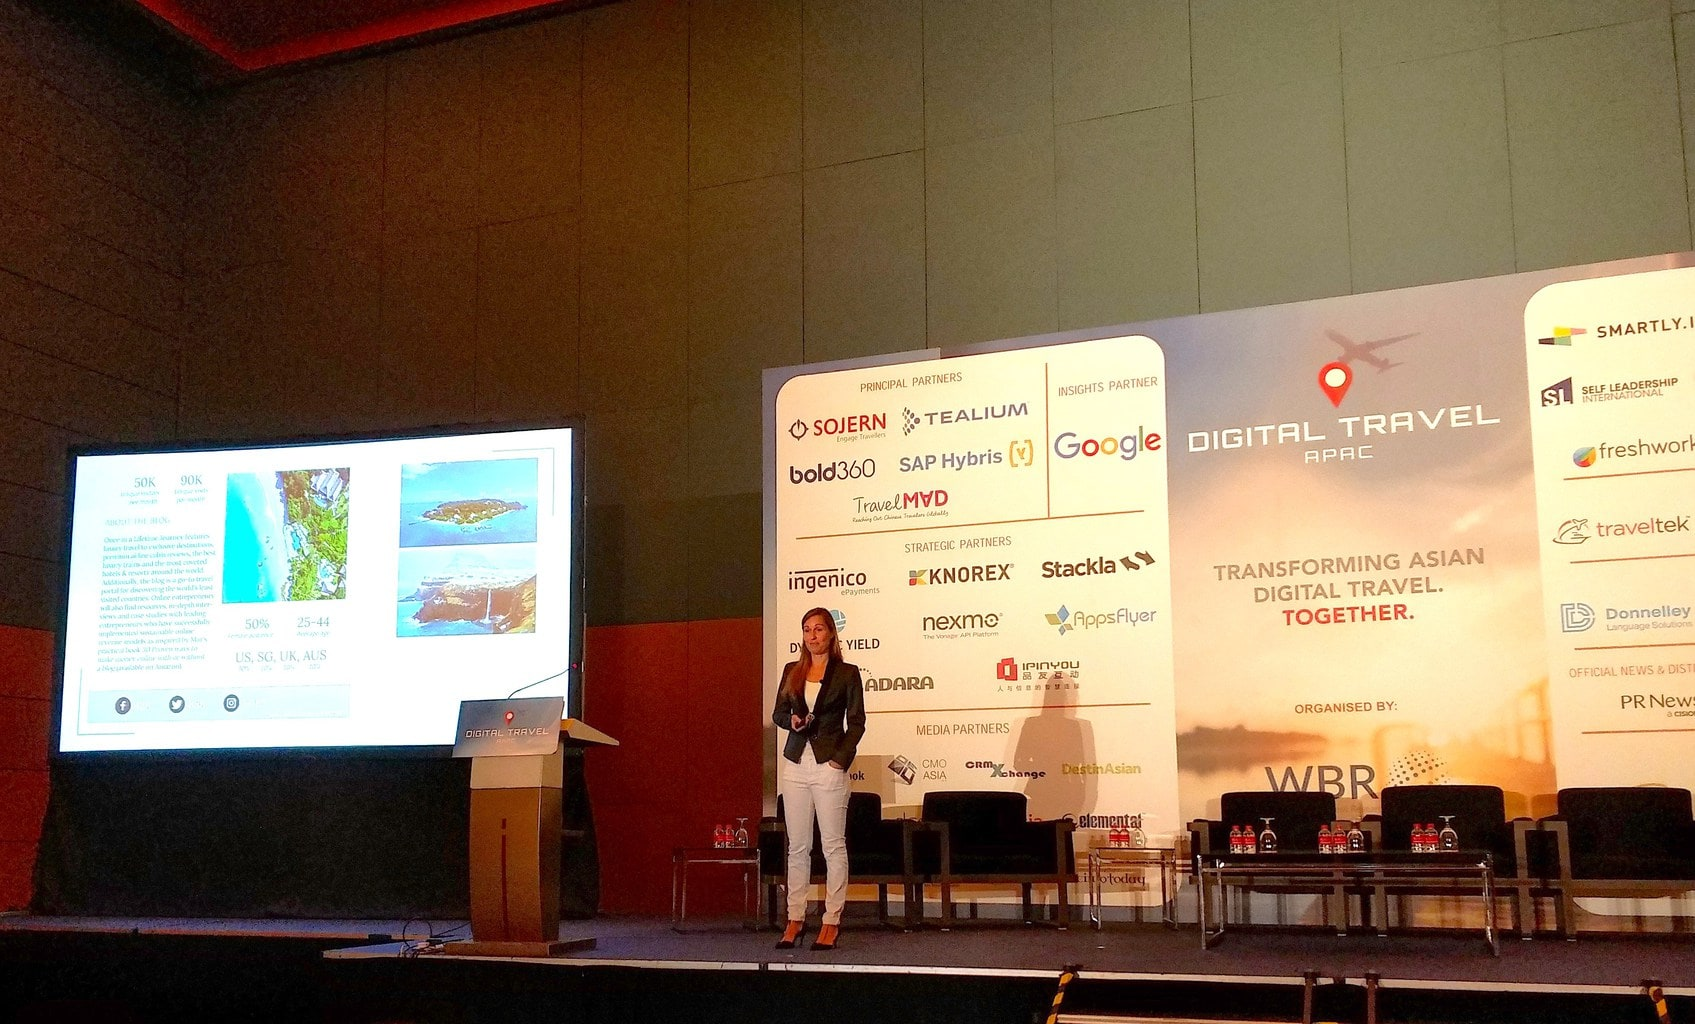 Me at the Digital Travel APAC